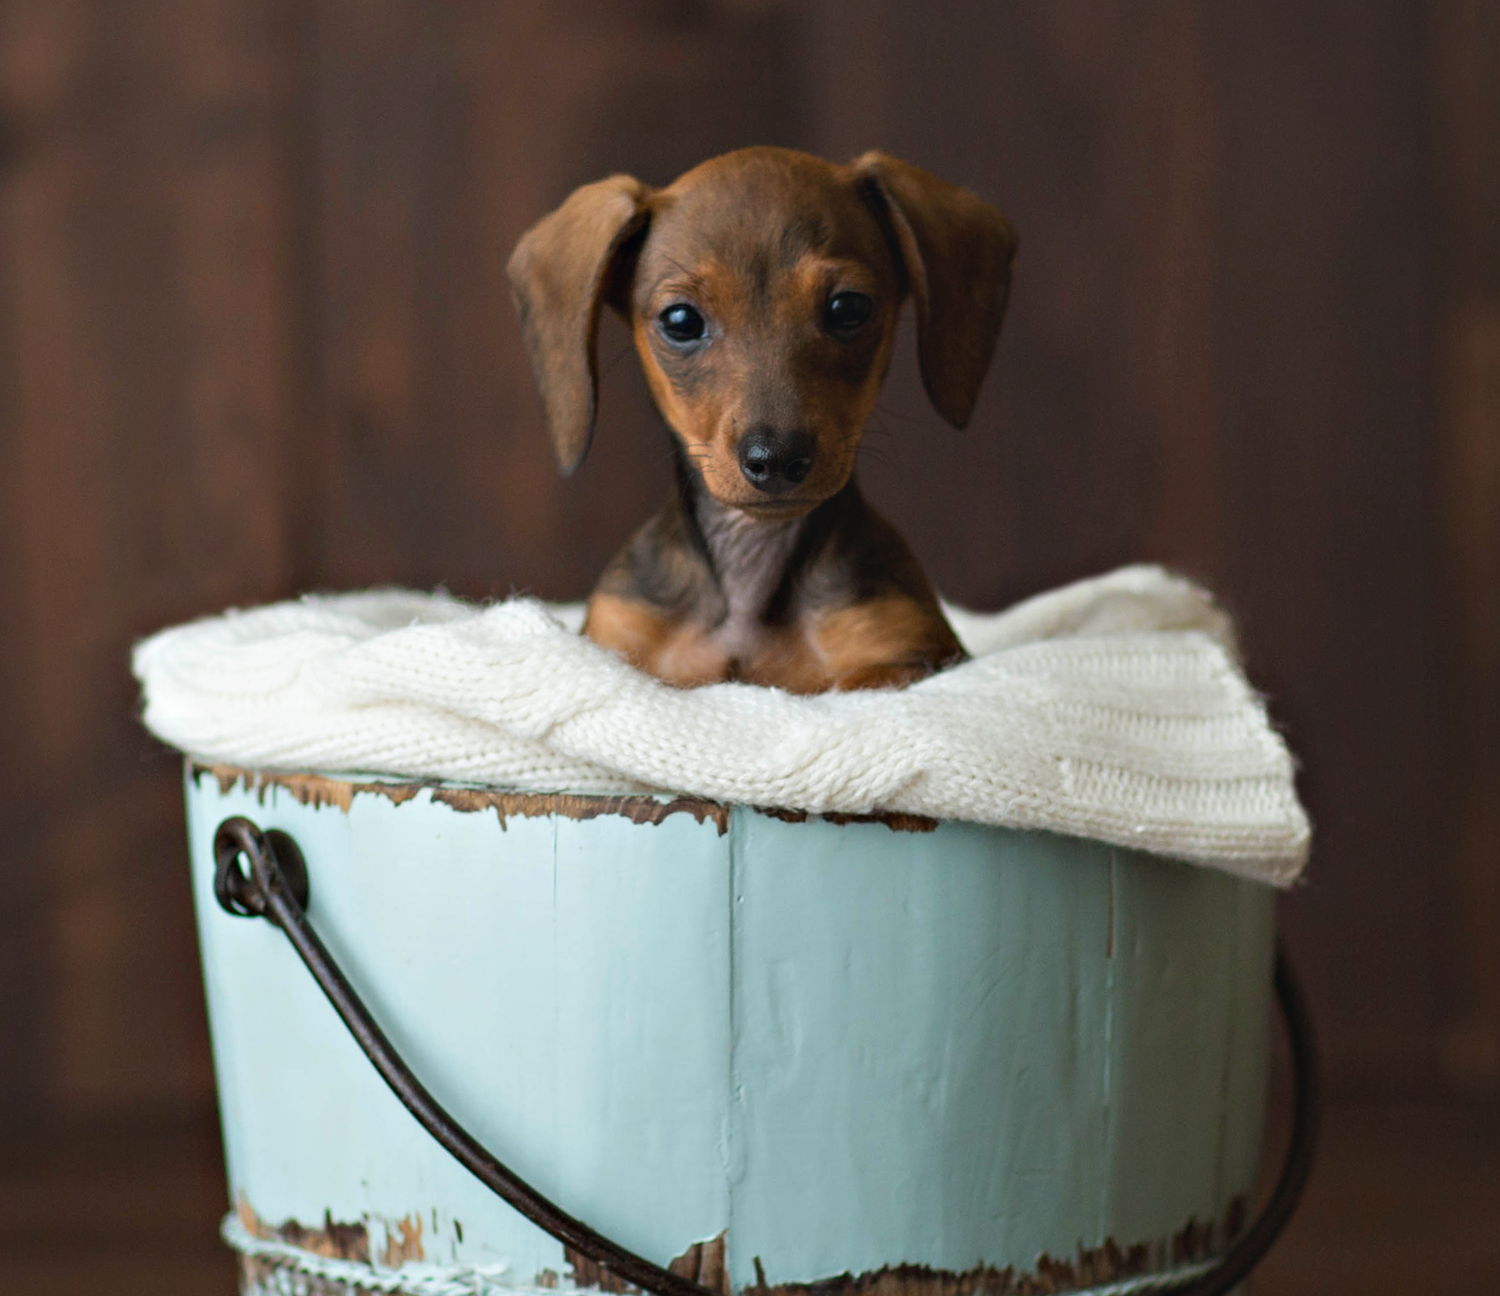 Dachshund puppies are the best (With images) Dachshund